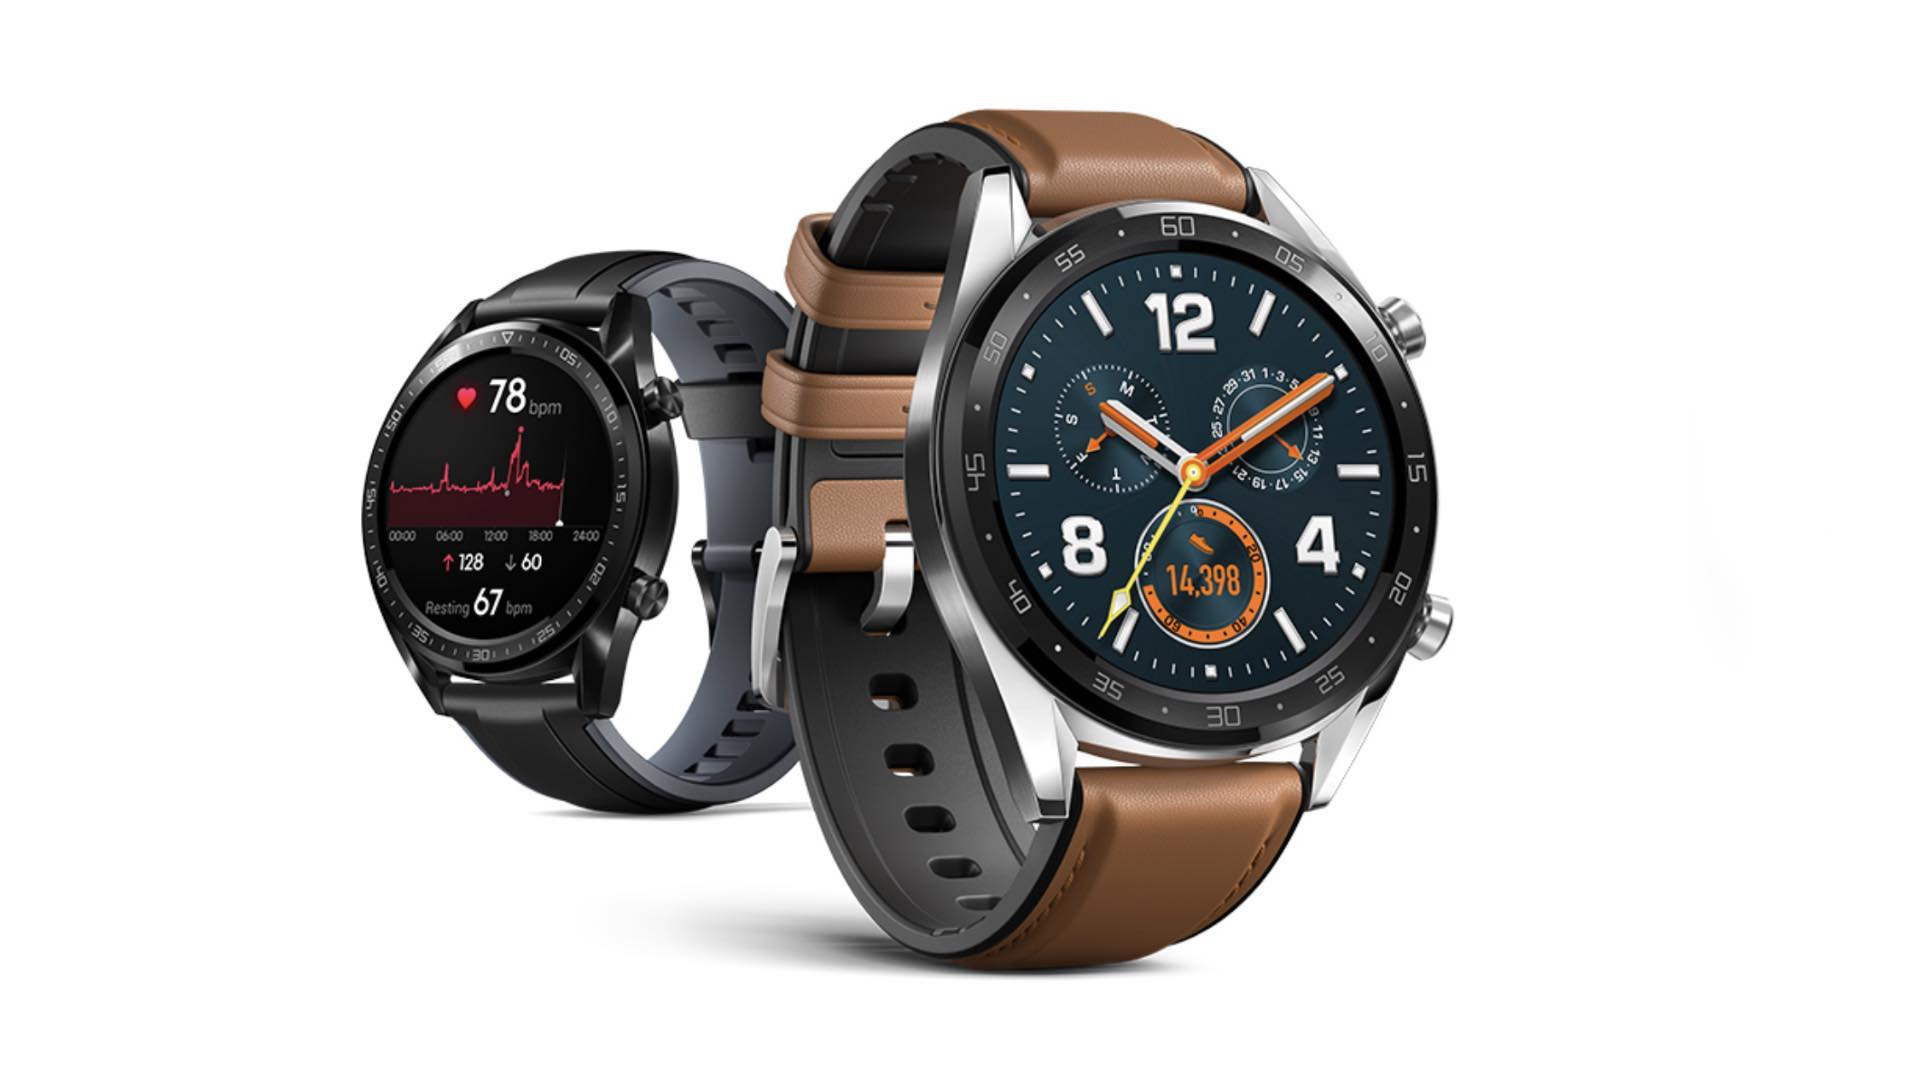 Huawei Watch GT (Google – Wear OS)